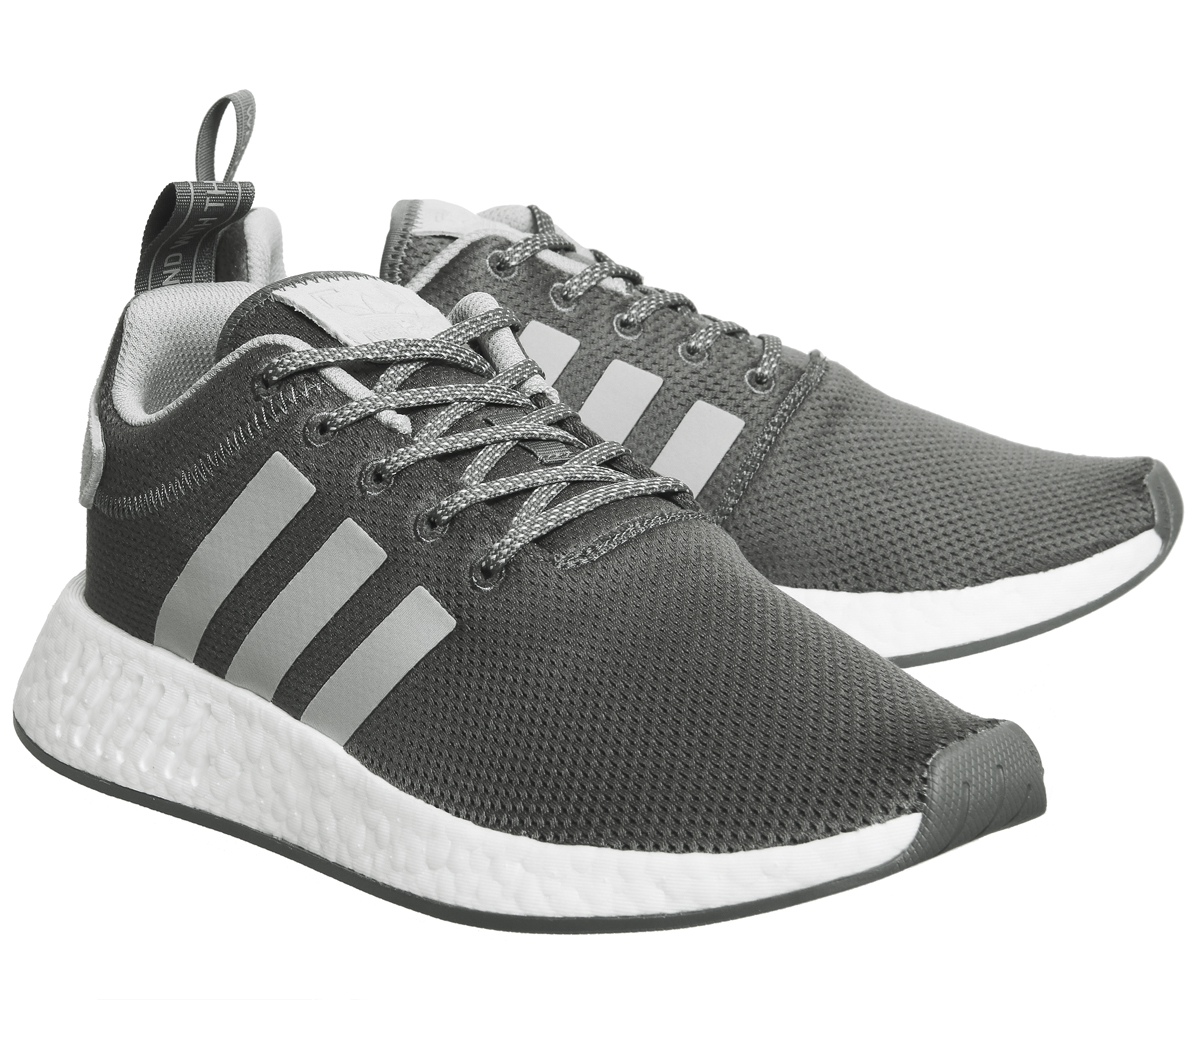 7927928c378f8 Womens Adidas Nmd R2 Trainers Grey Maroon Trainers Shoes